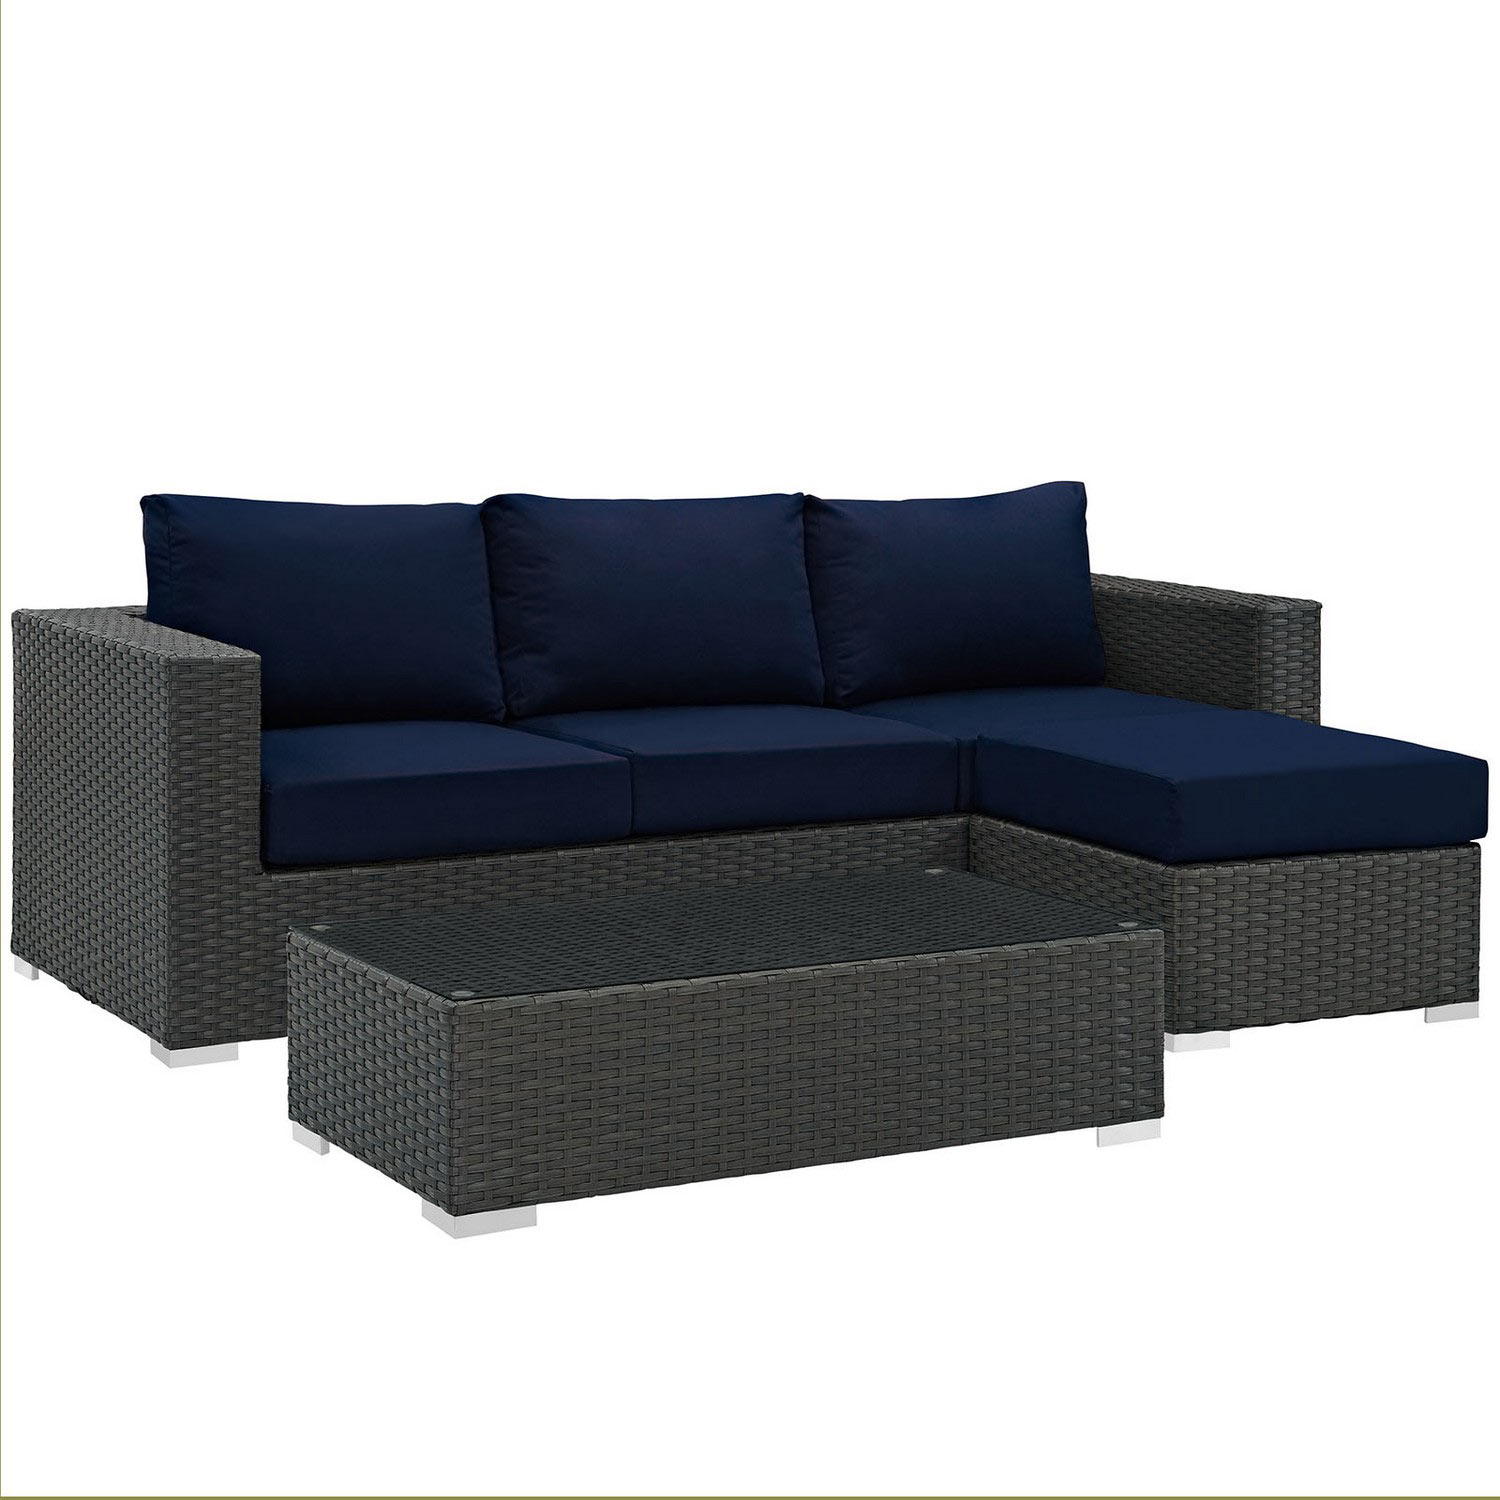 Modway Sojourn 3 Piece Outdoor Patio Sunbrella Sectional